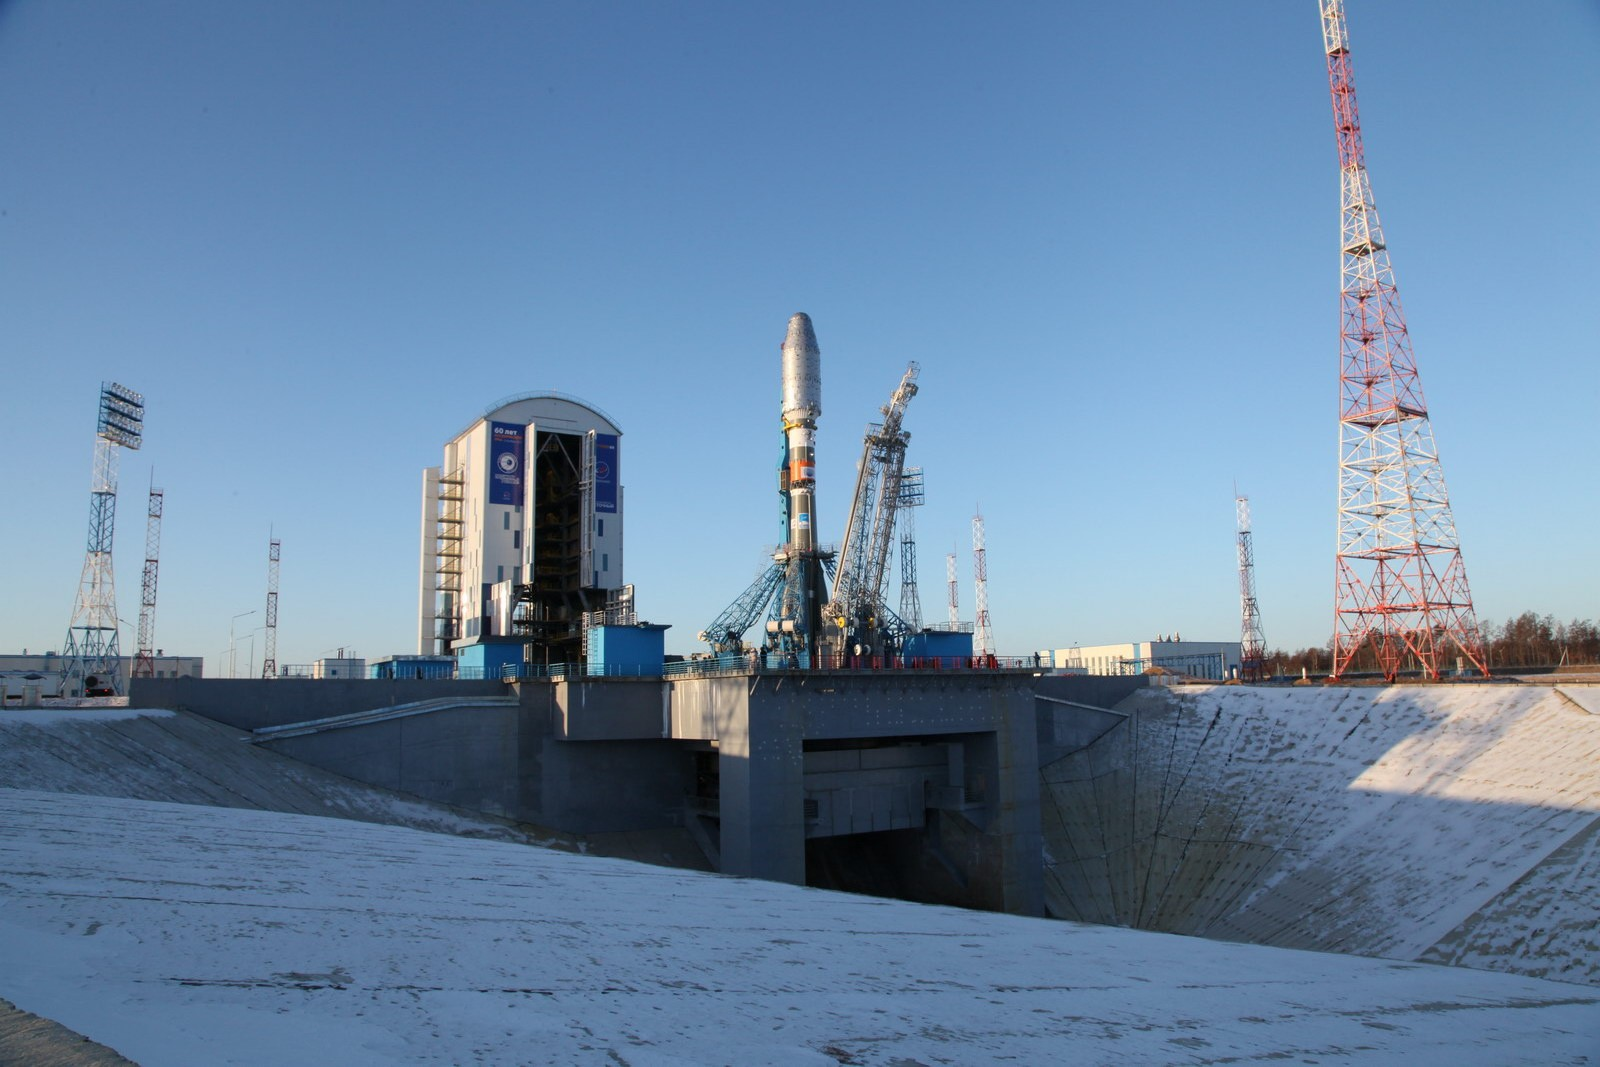 Builders of the Vostochny cosmodrome staged a strike due to non-payment of salaries 03/30/2015 72